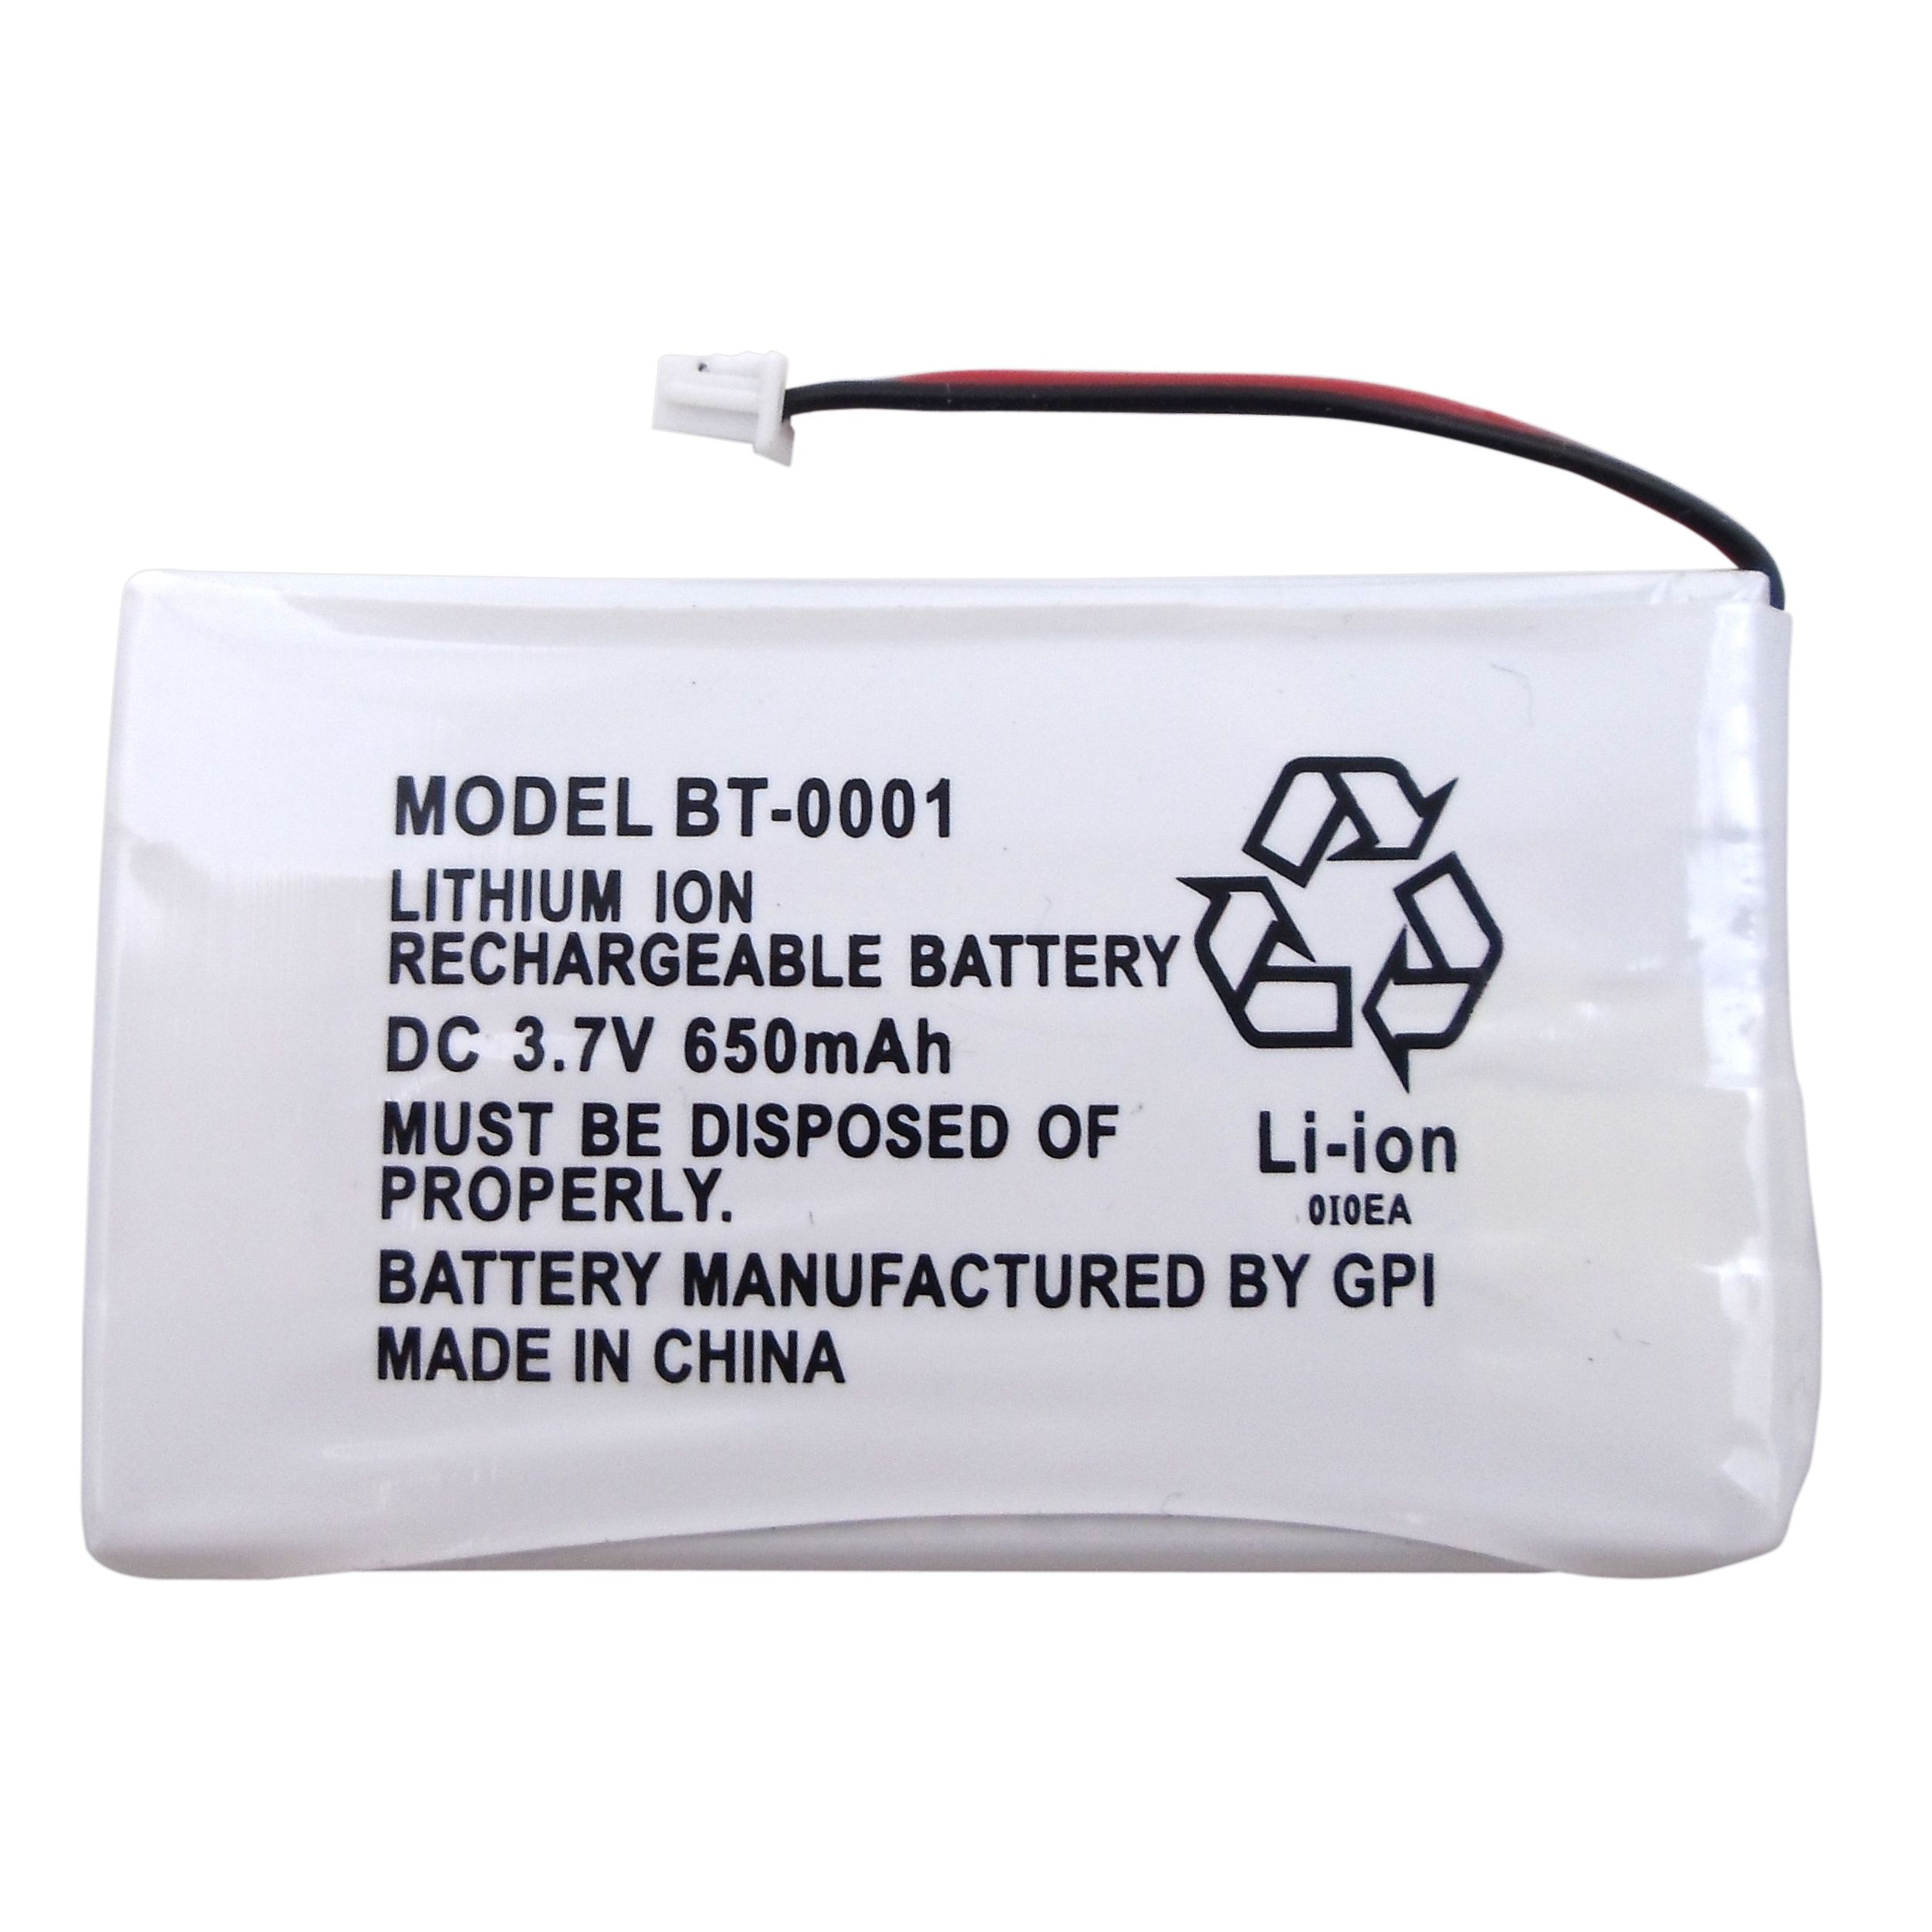 BBTY0531001-1 - Uniden Bearcat Replacement Rechargeable Lithium Ion Battery